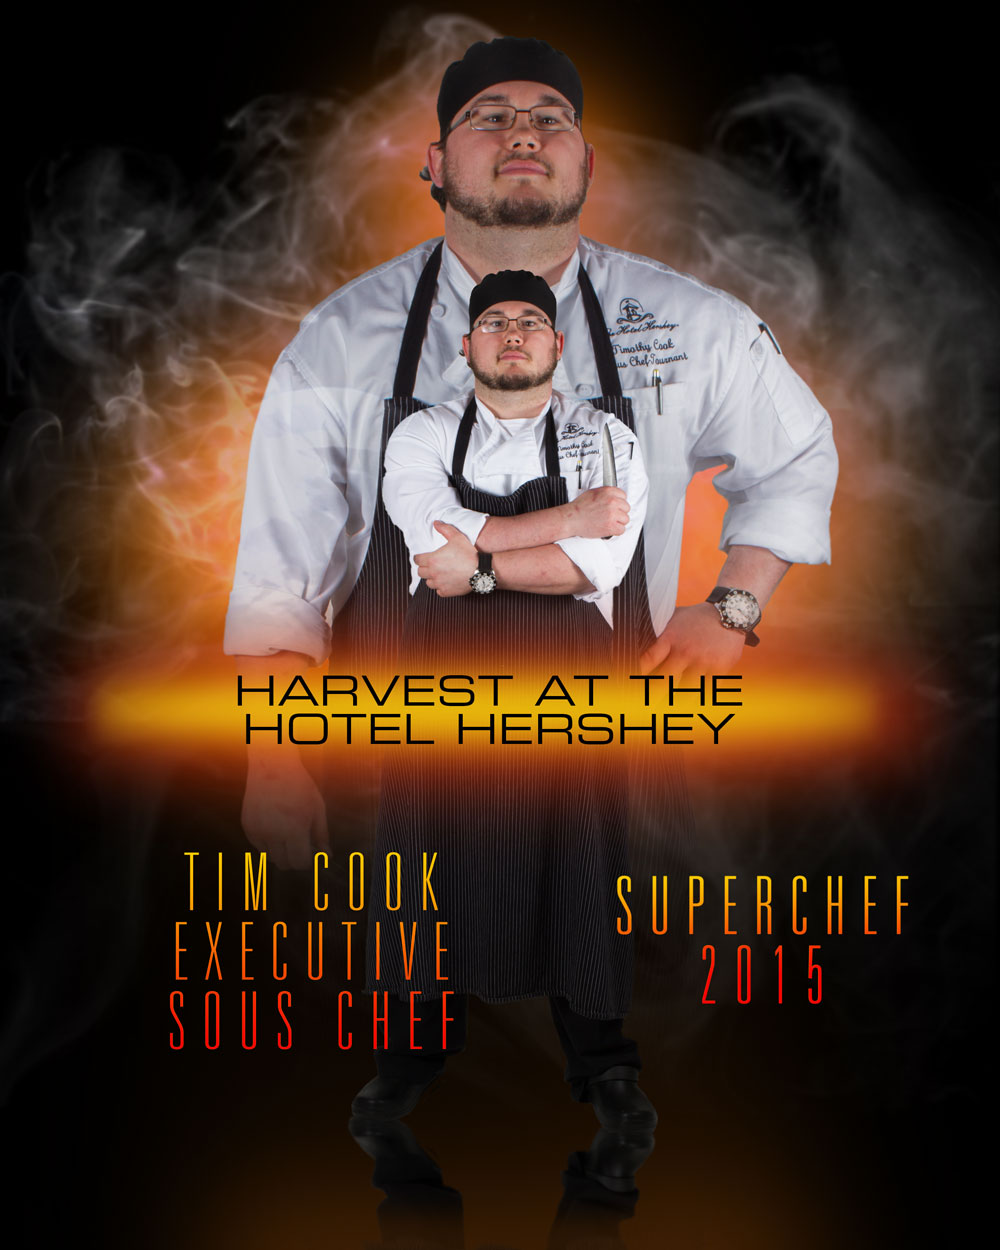 Tim Cook, Executive Sous Chef, Harvest at the Hotel Hershey